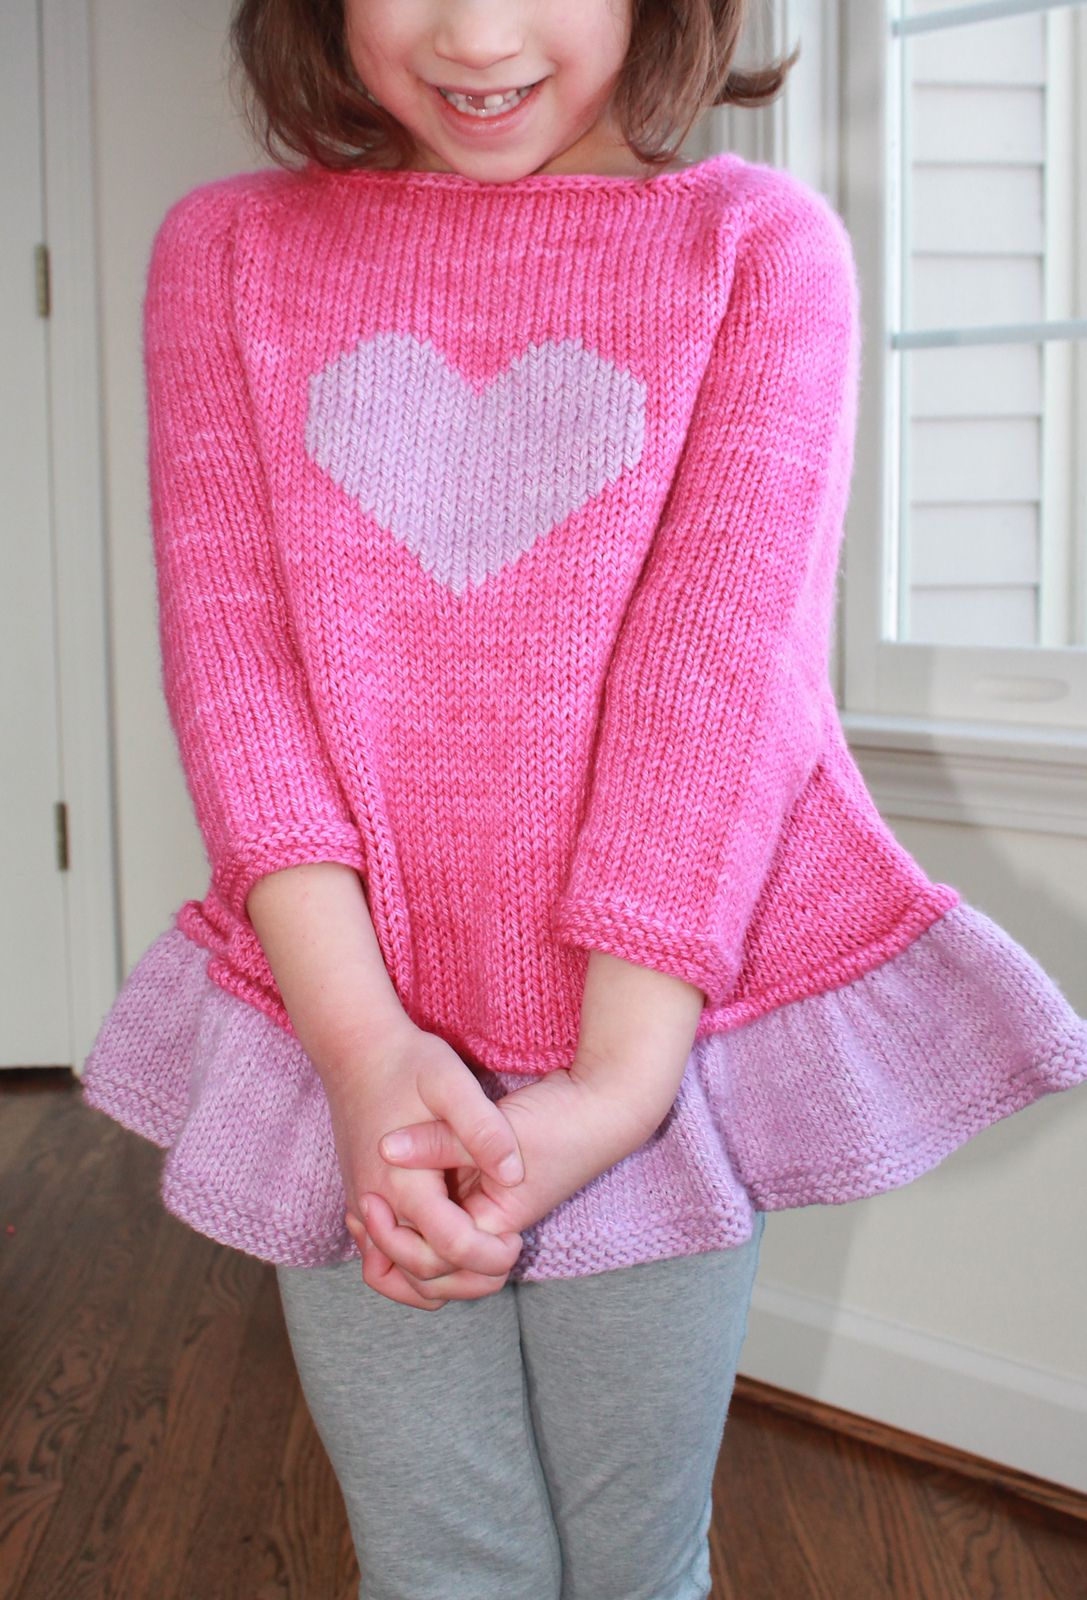 Tutu Top pattern by Lisa Chemery | Stricken